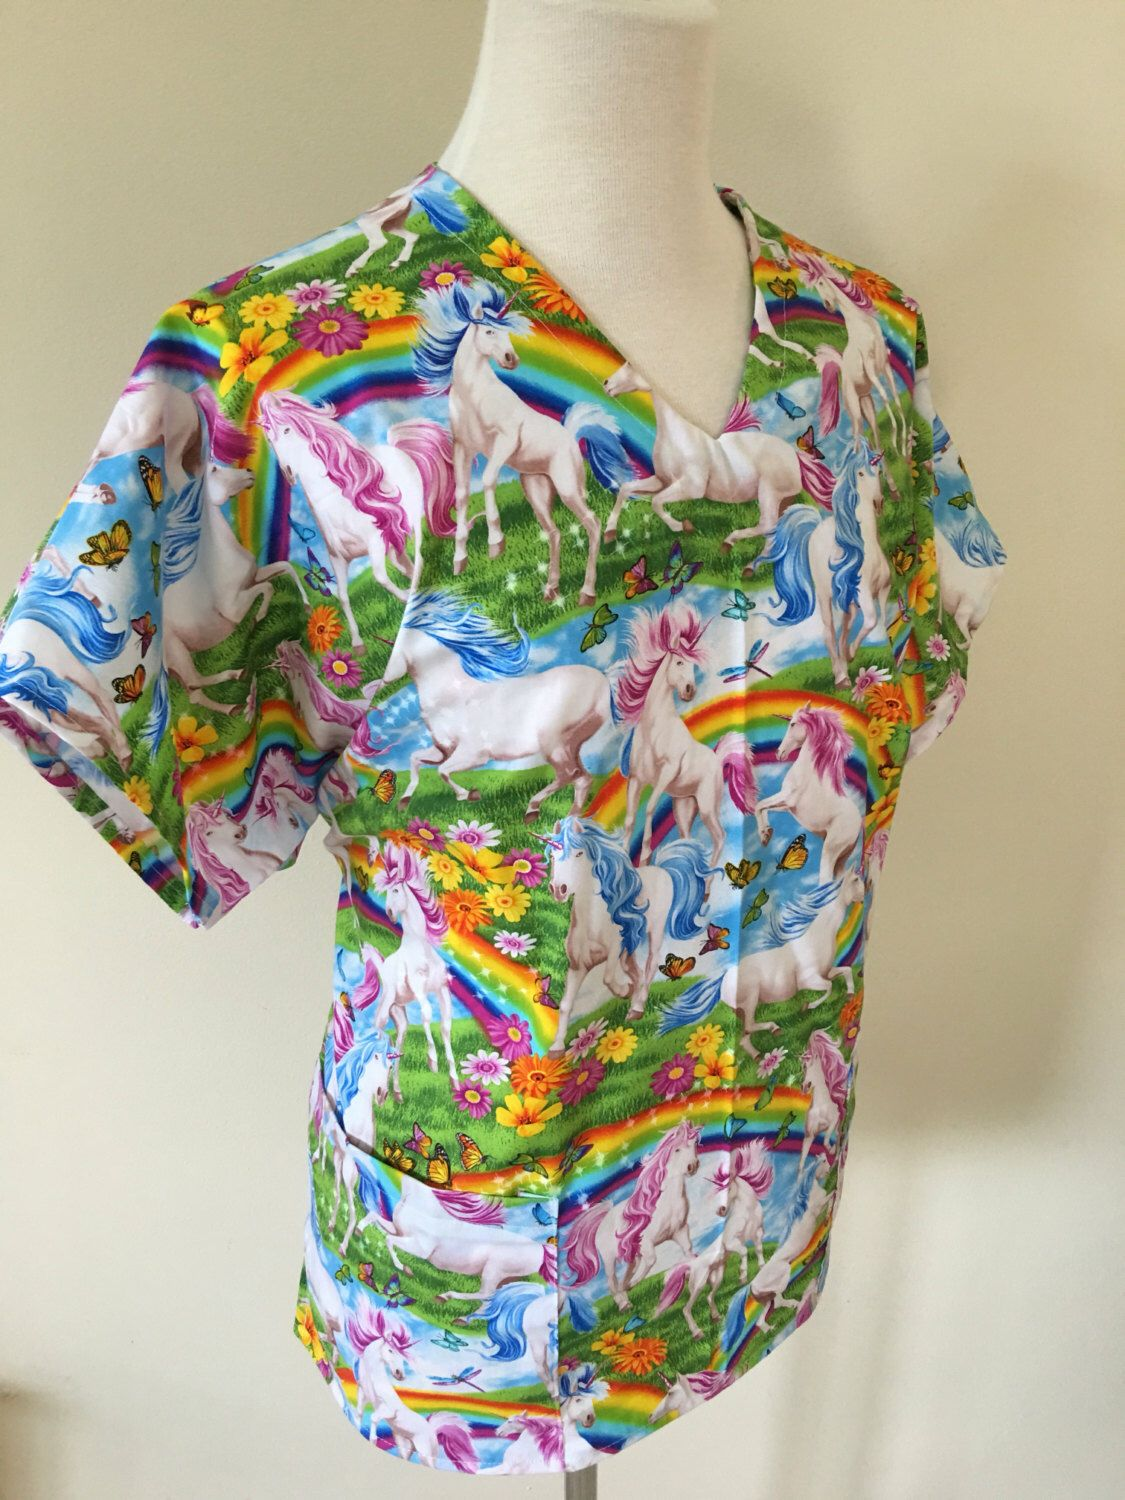 c5538298b41 Pin by Wendy Steere on Scrubs in my etsy | Tops, Floral tops, Scrub tops